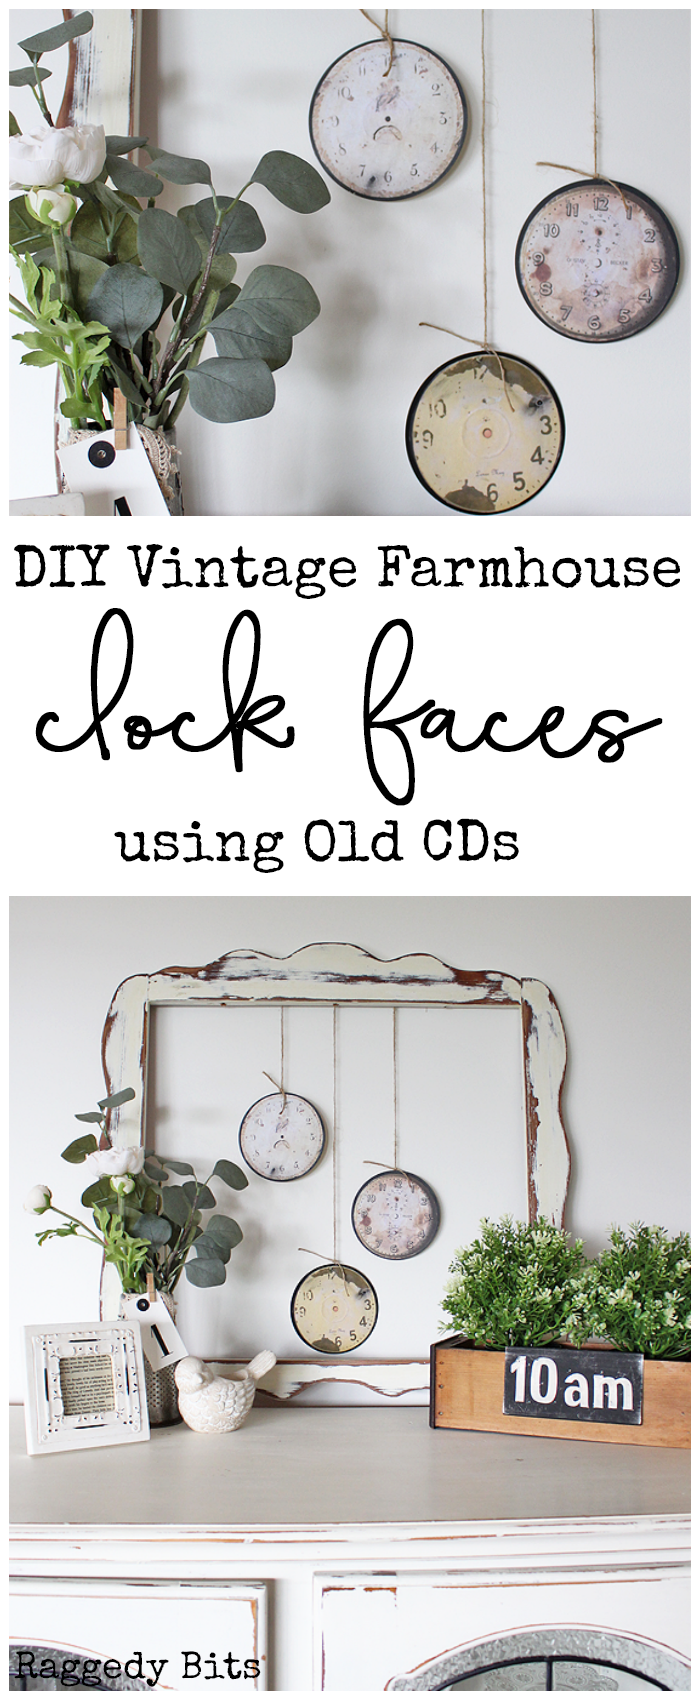 See how easy it is to turn some old scratched CDs into some DIY Vintage Farmhouse Clock Faces   www.raggedy-bits.com   #clockfaces #DIY #farmhouse #raggedybits #vintage